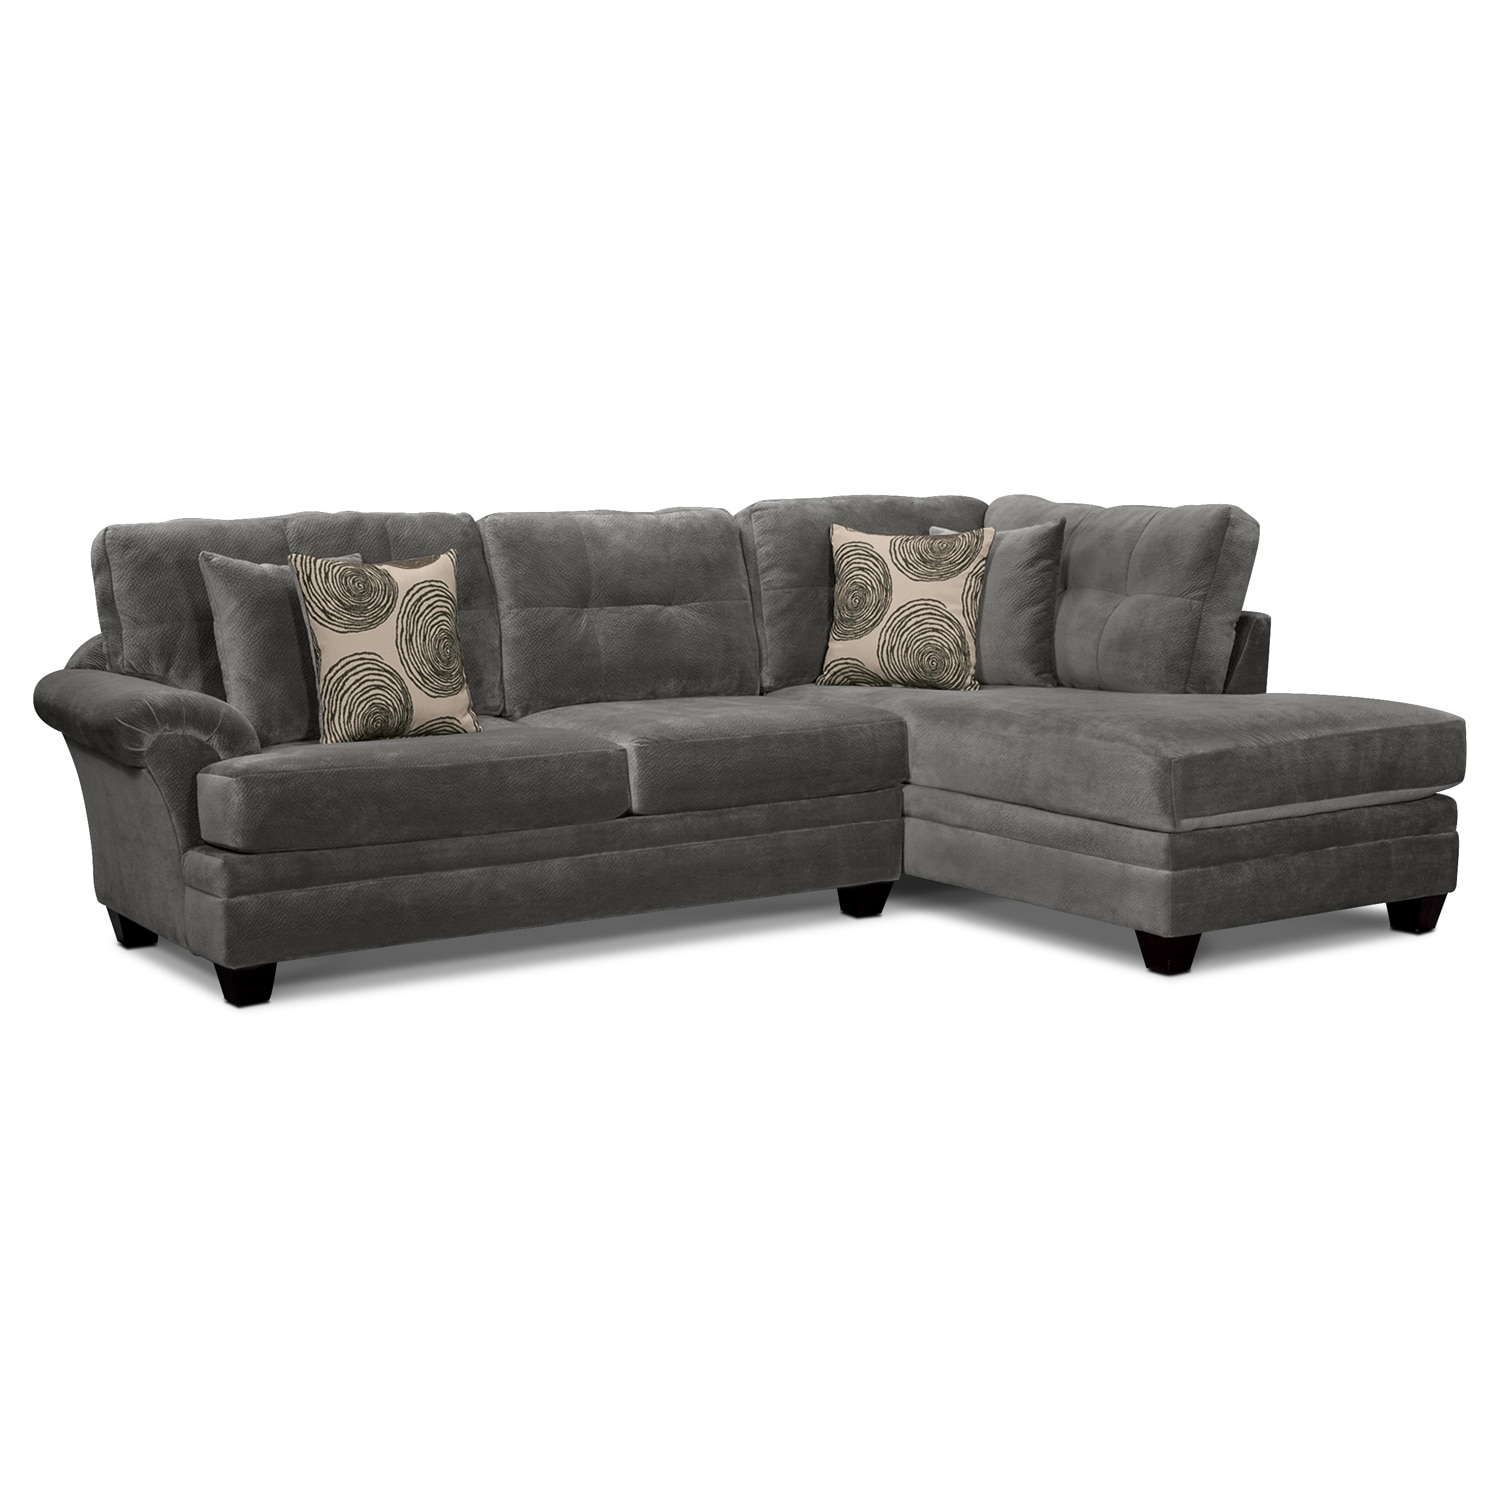 Cordelle 2 piece right facing chaise sectional gray for 2 piece sectional sofa with chaise